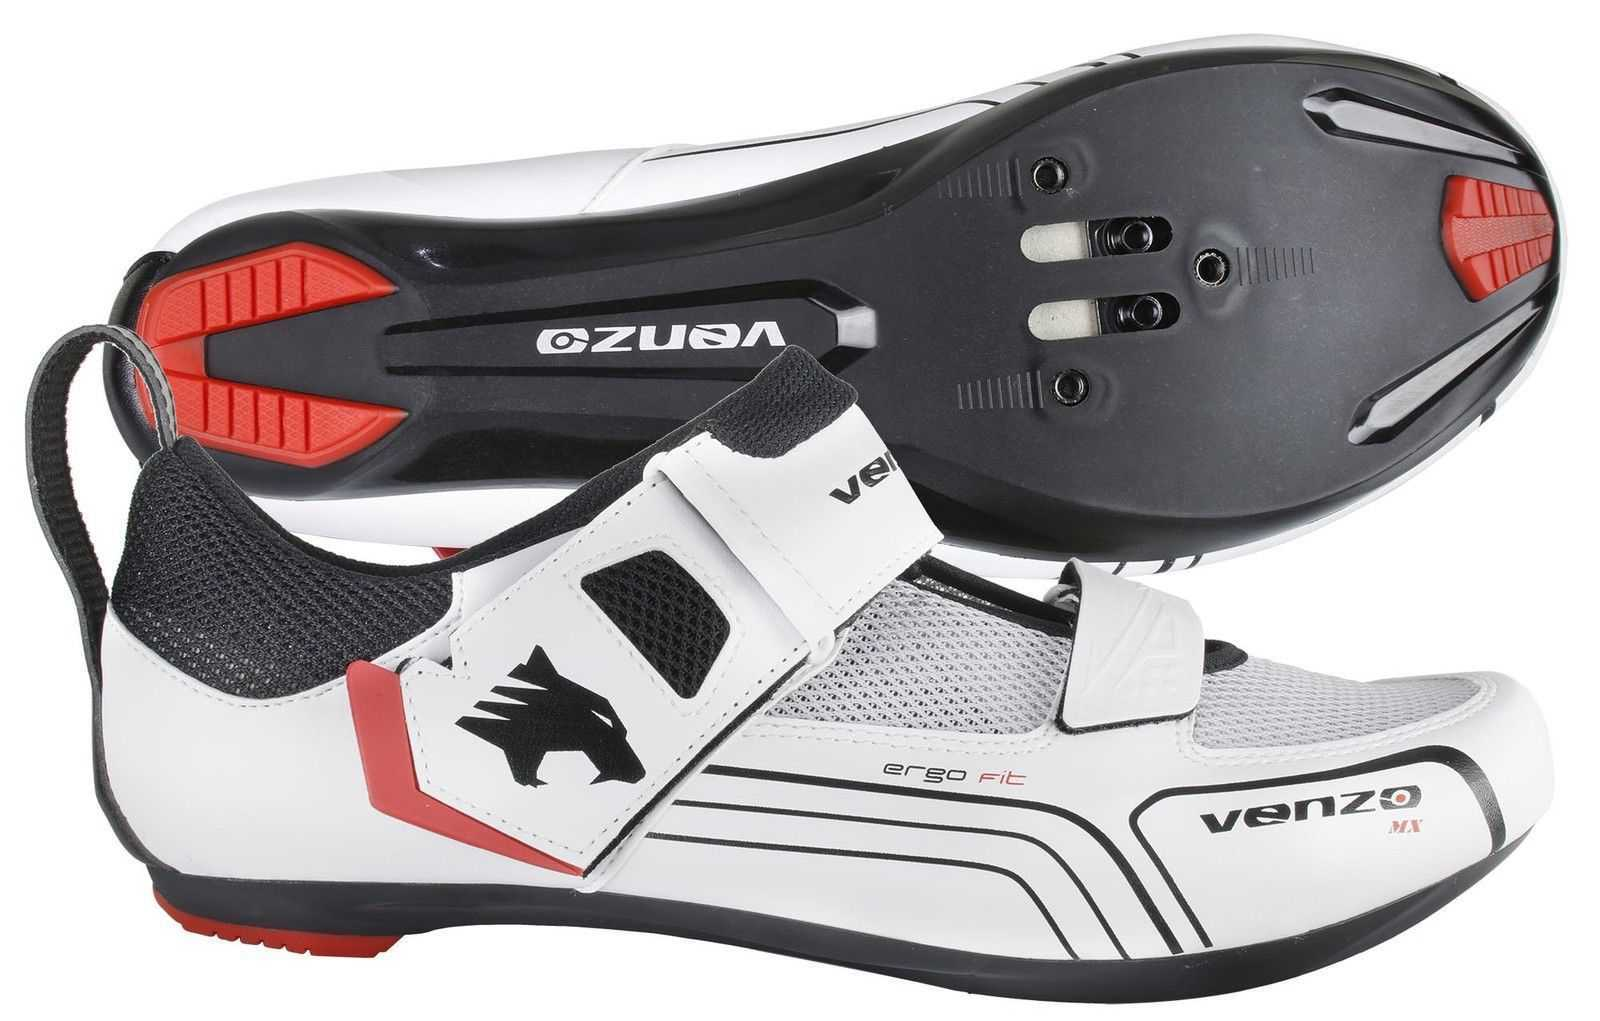 5014b75d635 Venzo Cycling Bicycle Triathlon Road Bike Shoes For Shimano SPD SL Look  White 46 0